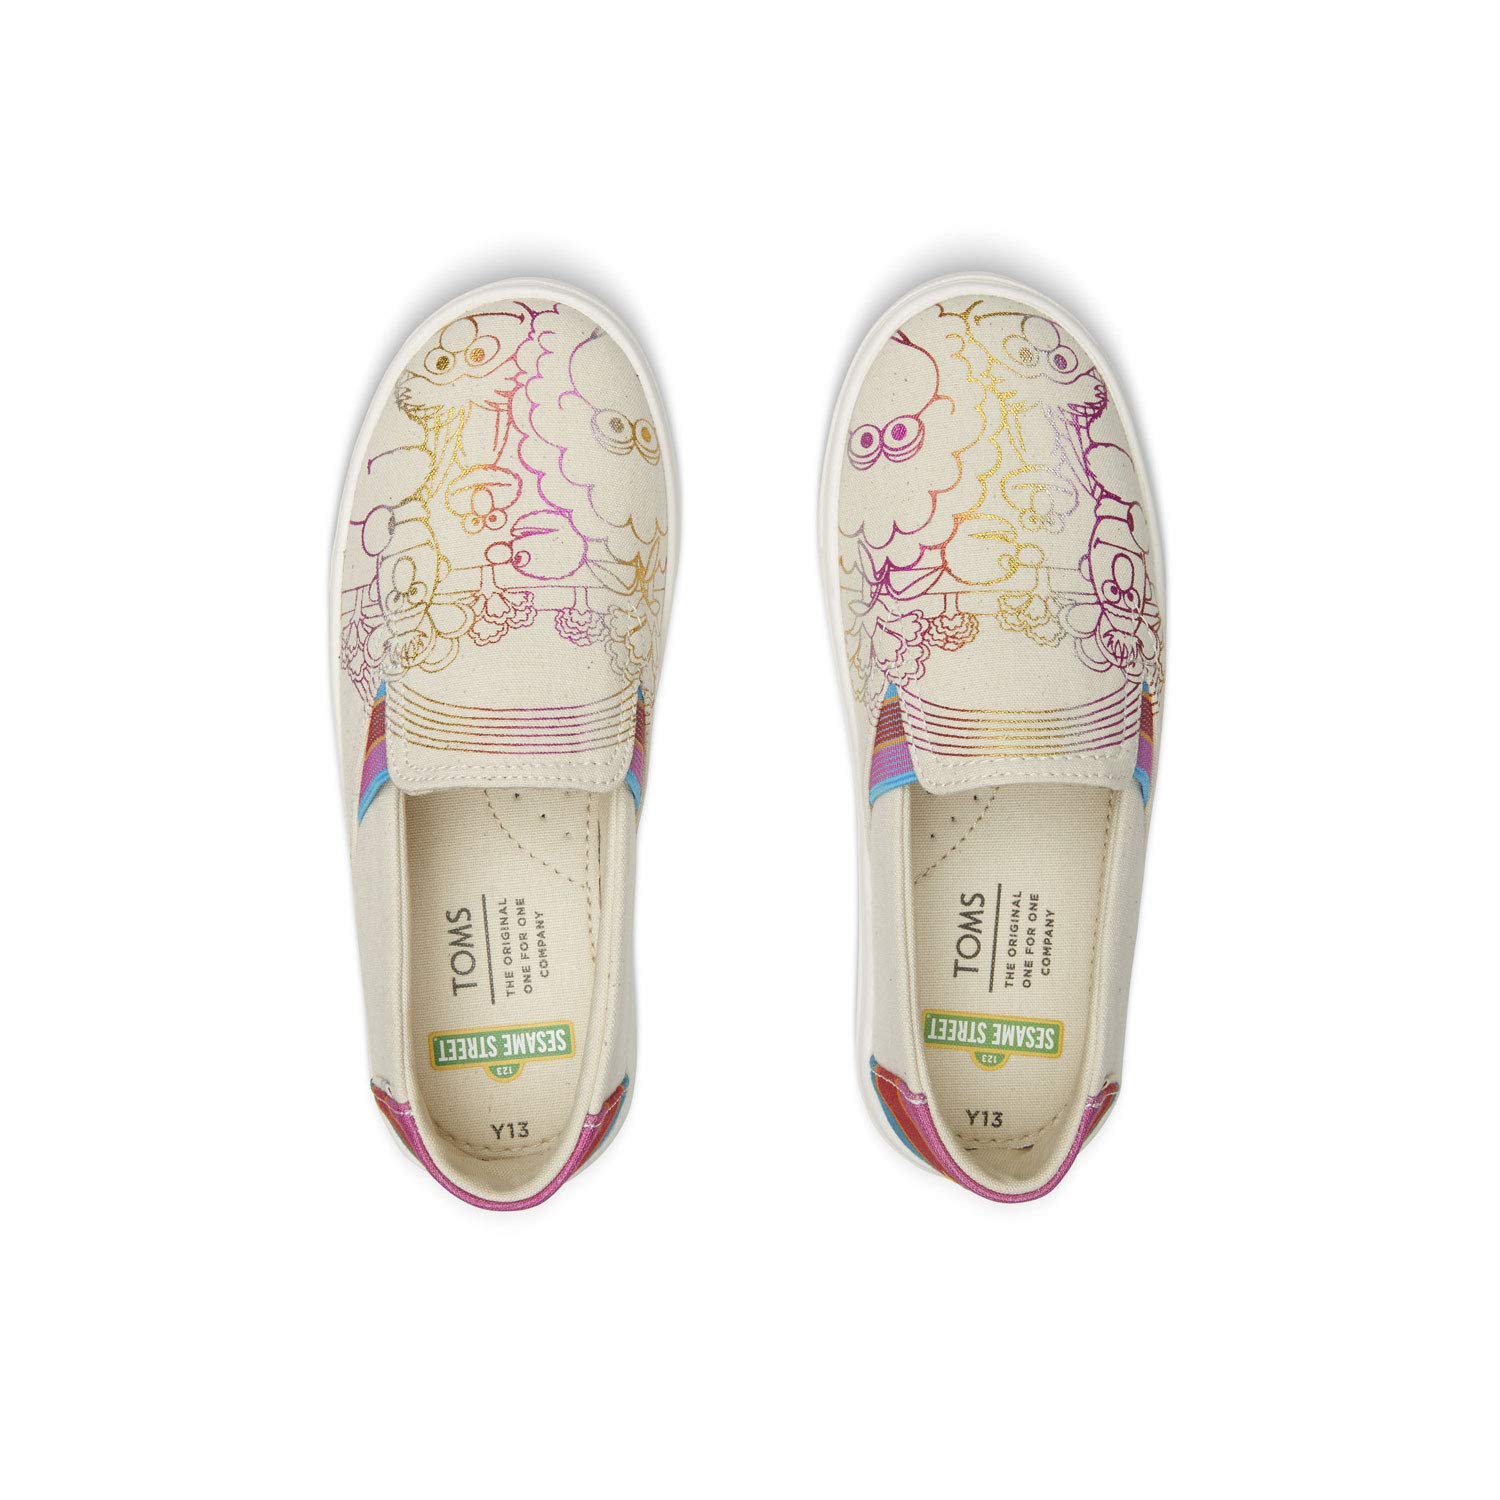 TOMS Sesame Street X Foil Printed Canvas Youth Luca Slip-Ons 10013644 (Size: 6) by TOMS (Image #3)